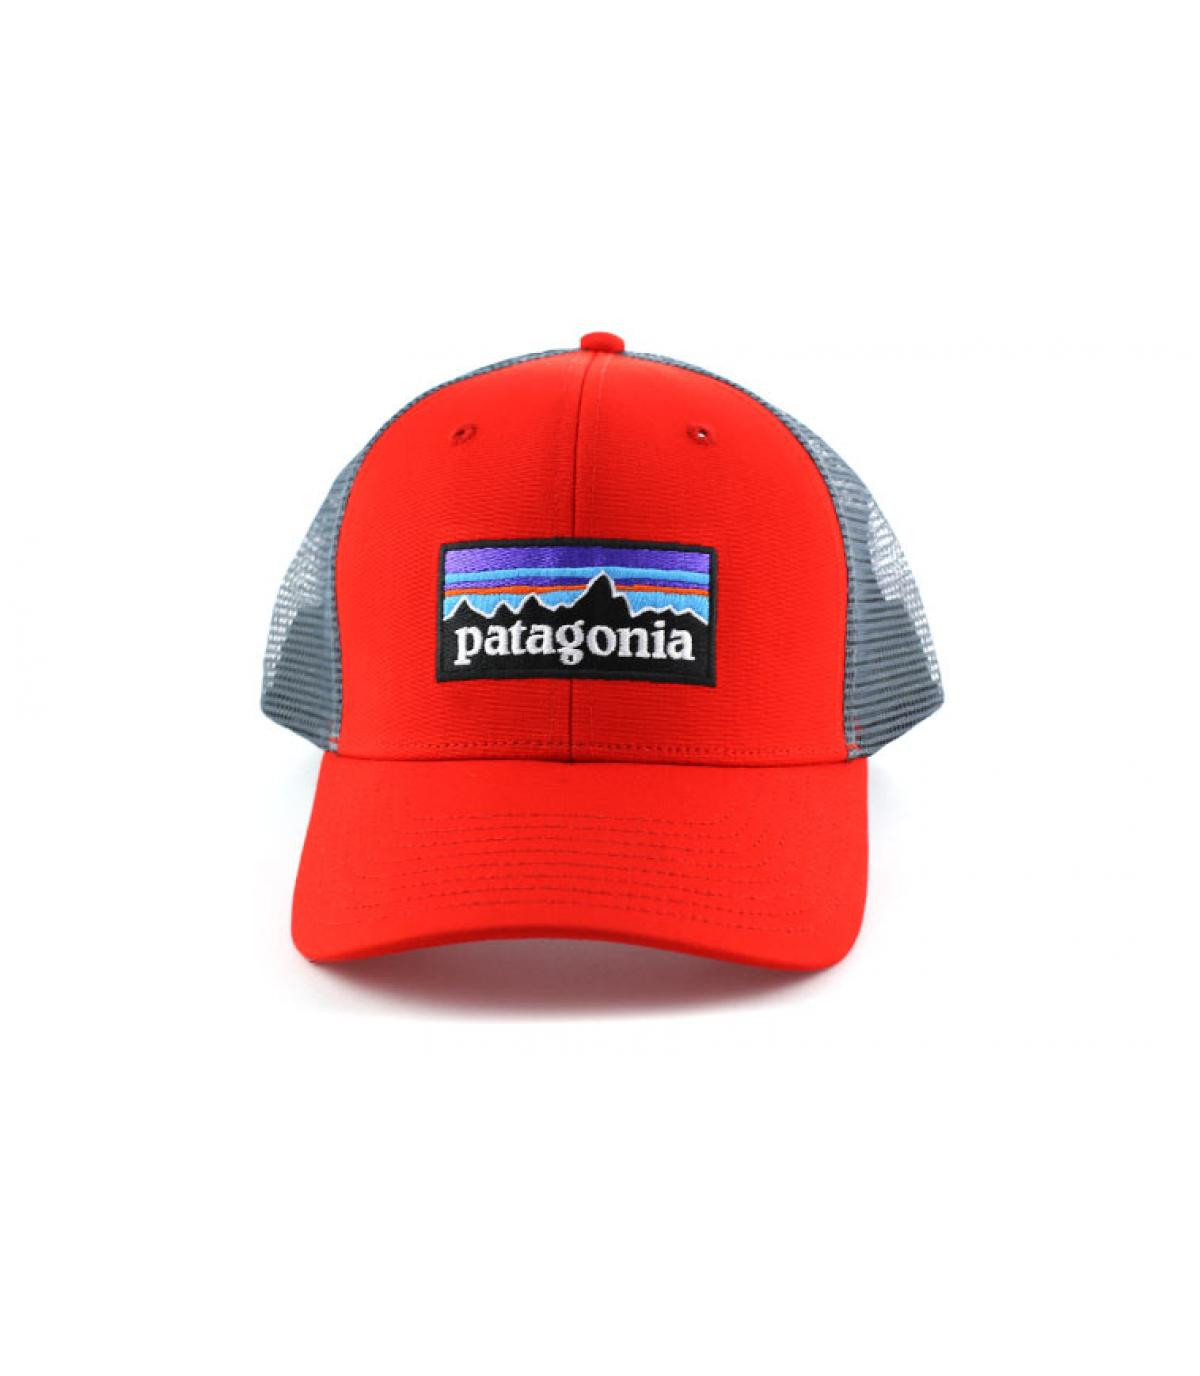 Détails P6 logo trucker hat french red - image 6